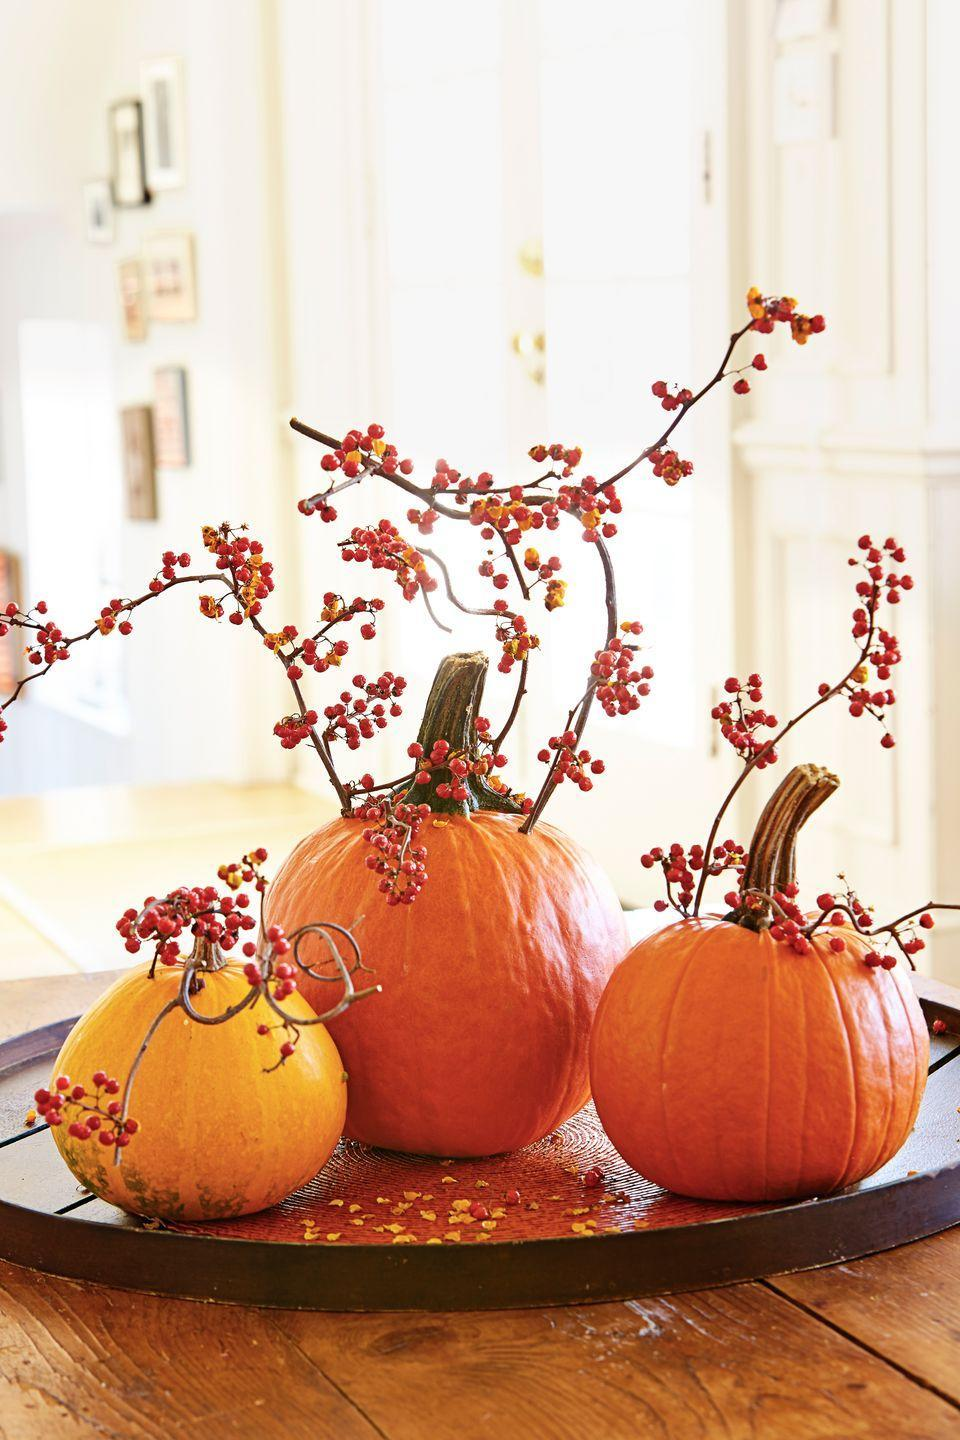 """<p>If you don't want to deal with the mess of carving, drill small holes in the rind instead. Then insert sprigs of colorful berries or <a href=""""https://www.goodhousekeeping.com/holidays/halloween-ideas/g1714/no-carve-pumpkin-decorating/?slide=2"""" rel=""""nofollow noopener"""" target=""""_blank"""" data-ylk=""""slk:fresh flower stems"""" class=""""link rapid-noclick-resp"""">fresh flower stems</a> for a dramatic effect. </p>"""